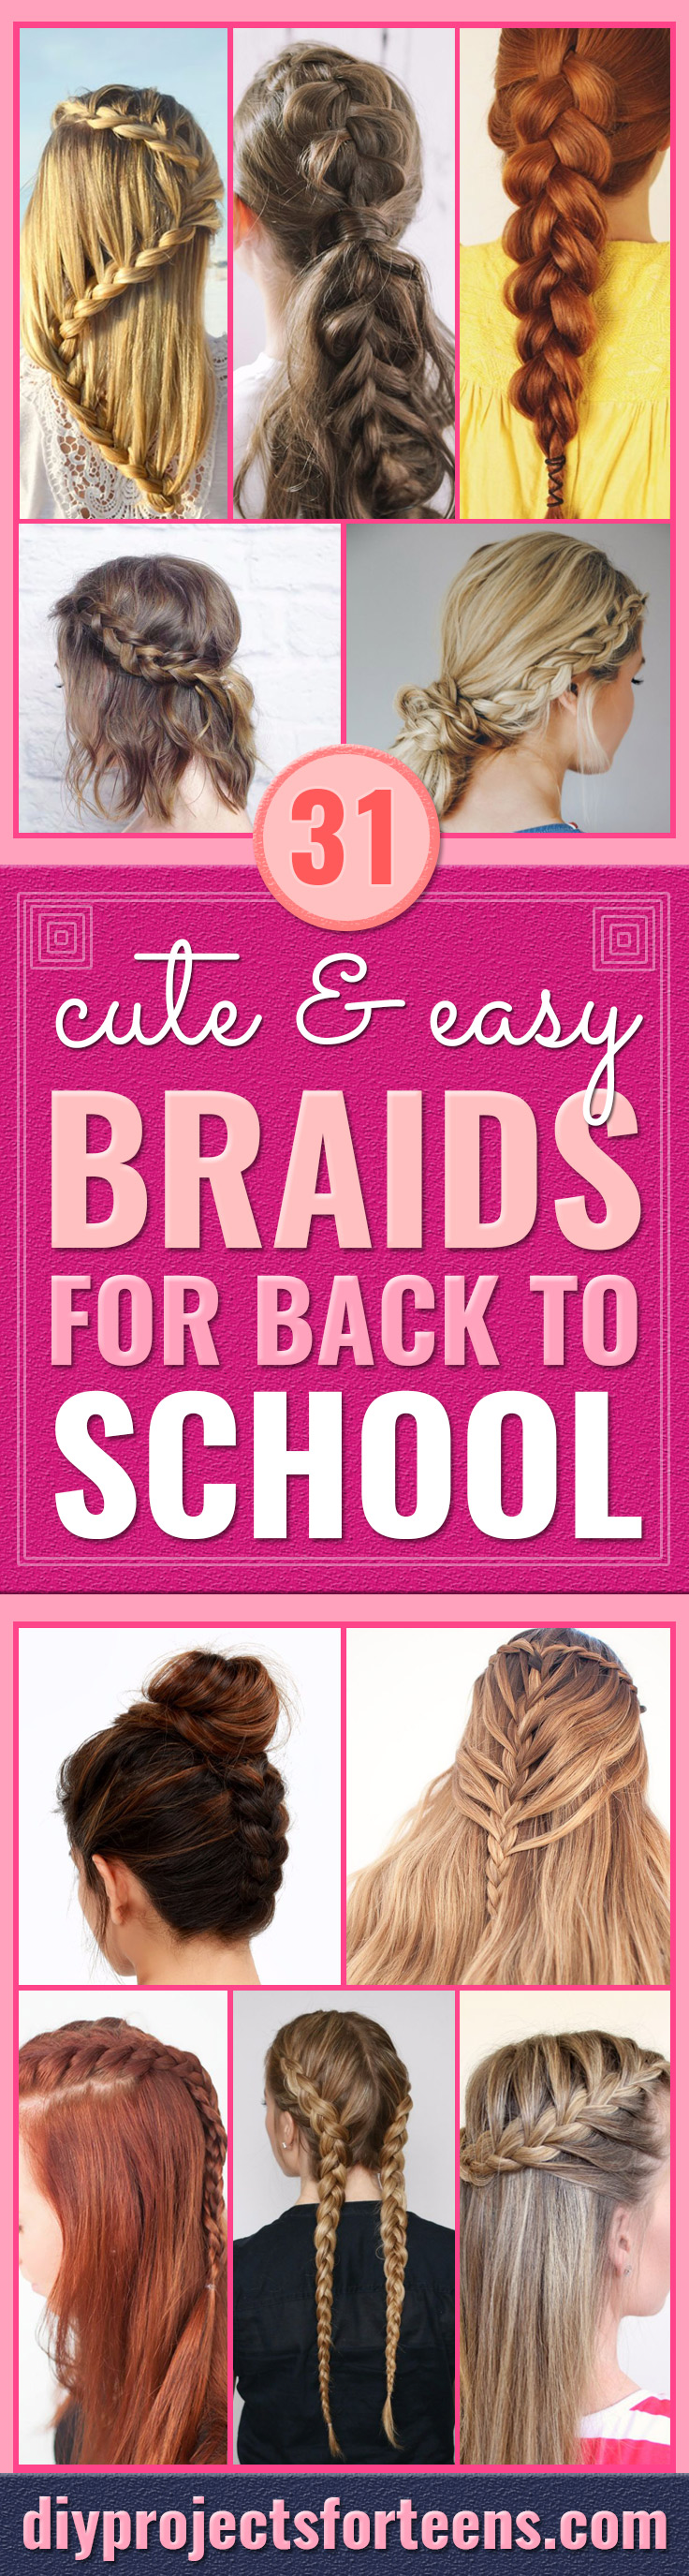 Easy Braids With Tutorials - Cute Braiding Tutorials for Teens, Girls and Women - Easy Step by Step Braid Ideas - Quick Hairstyles for School - Creative Braids for Teenagers - Tutorial and Instructions for Hair Braiding http://diyprojectsforteens.com/easy-braids-tutorials